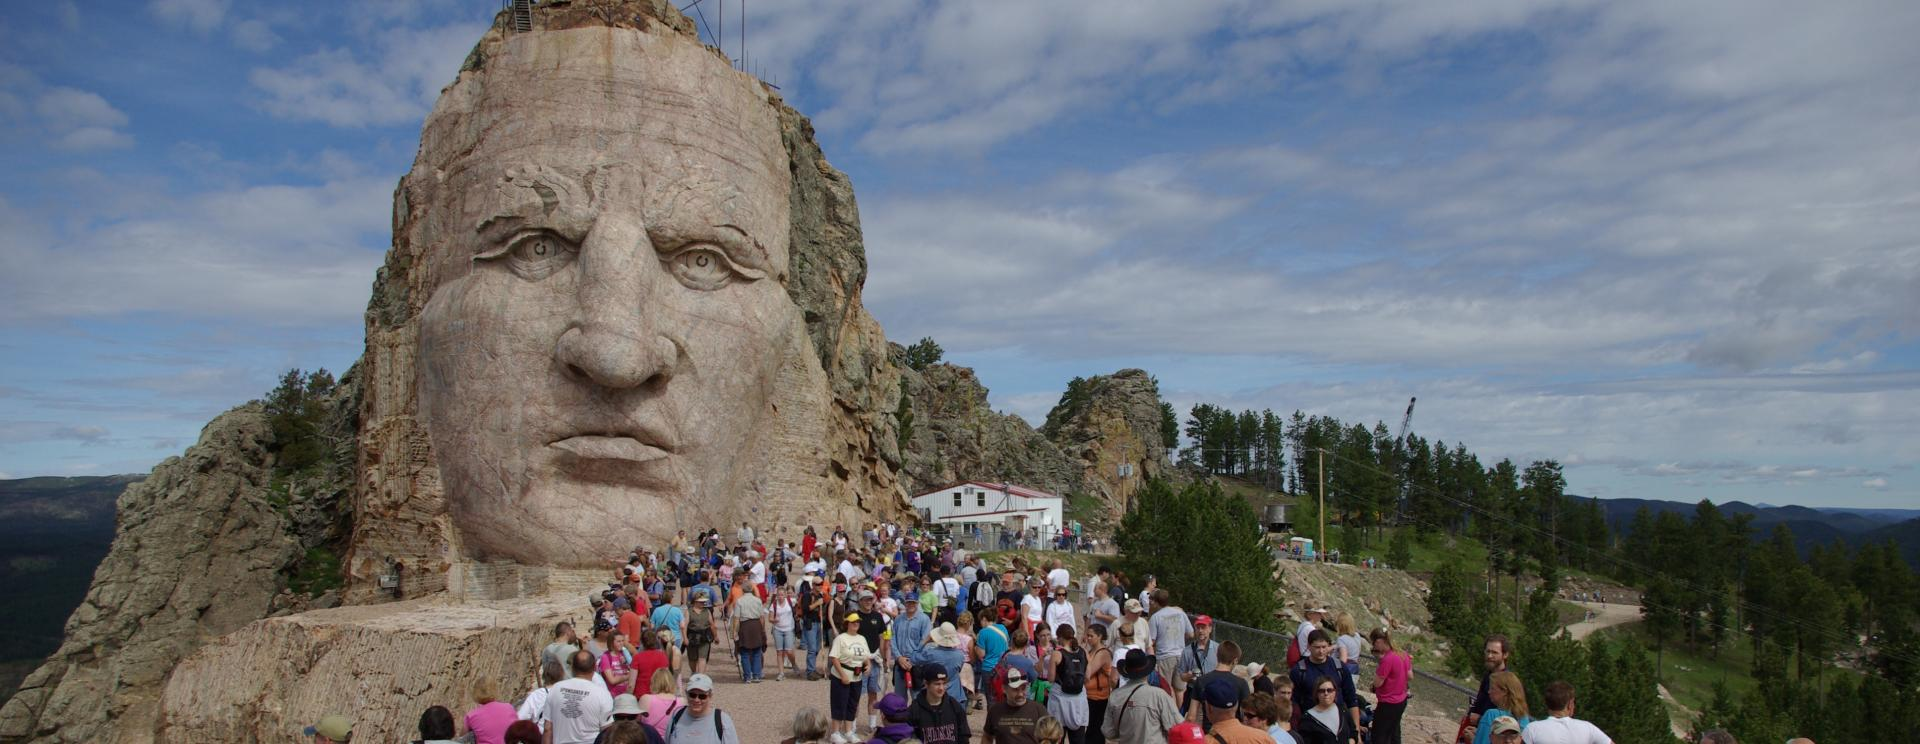 36th Annual Spring Volksmarch at Crazy Horse Memorial®